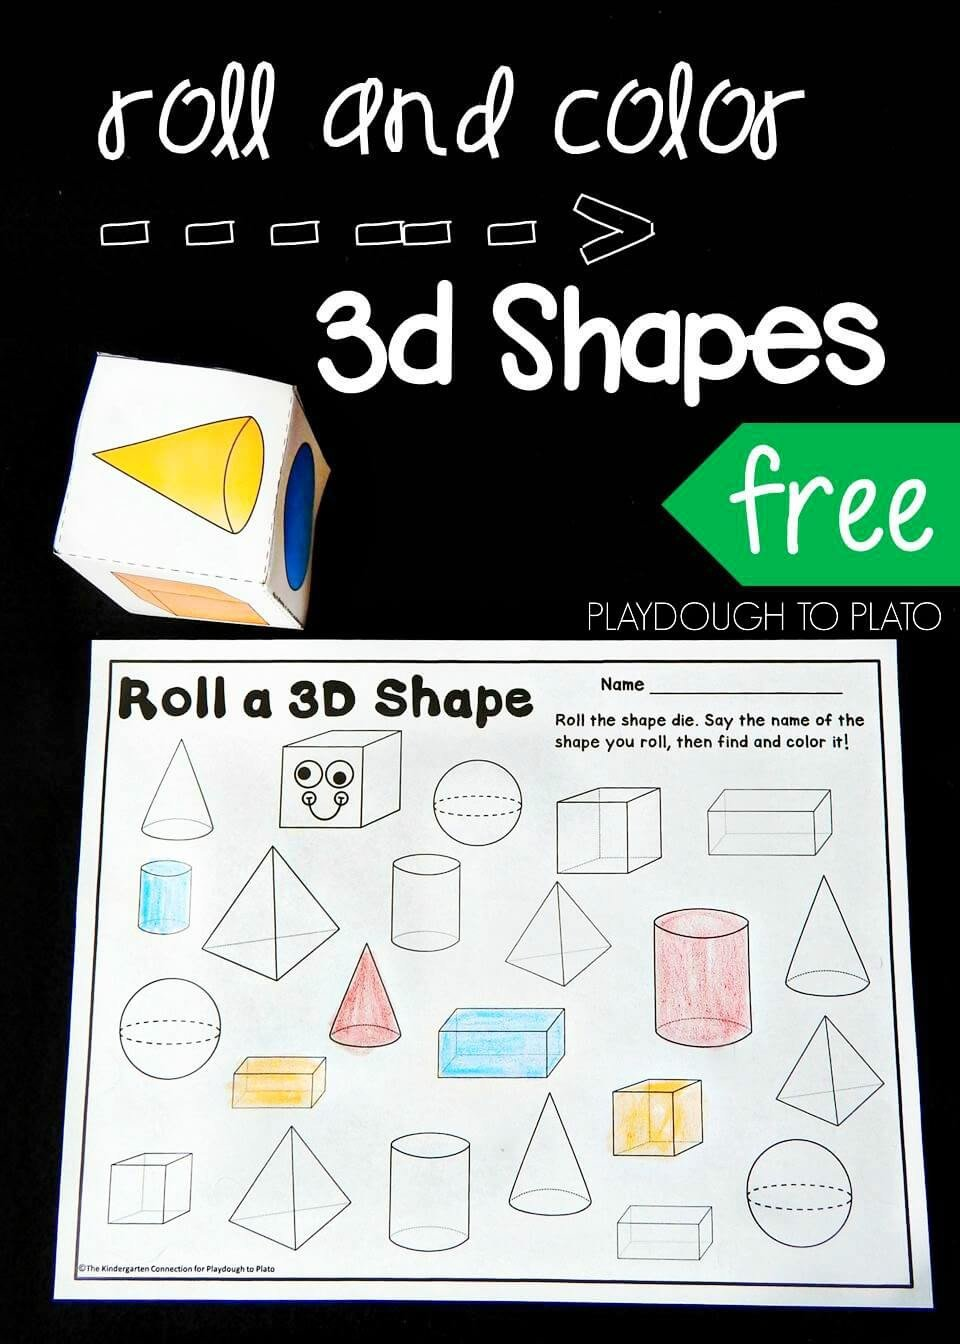 Kindergarten 3d Shape Worksheets Roll and Color 3d Shapes Playdough to Plato